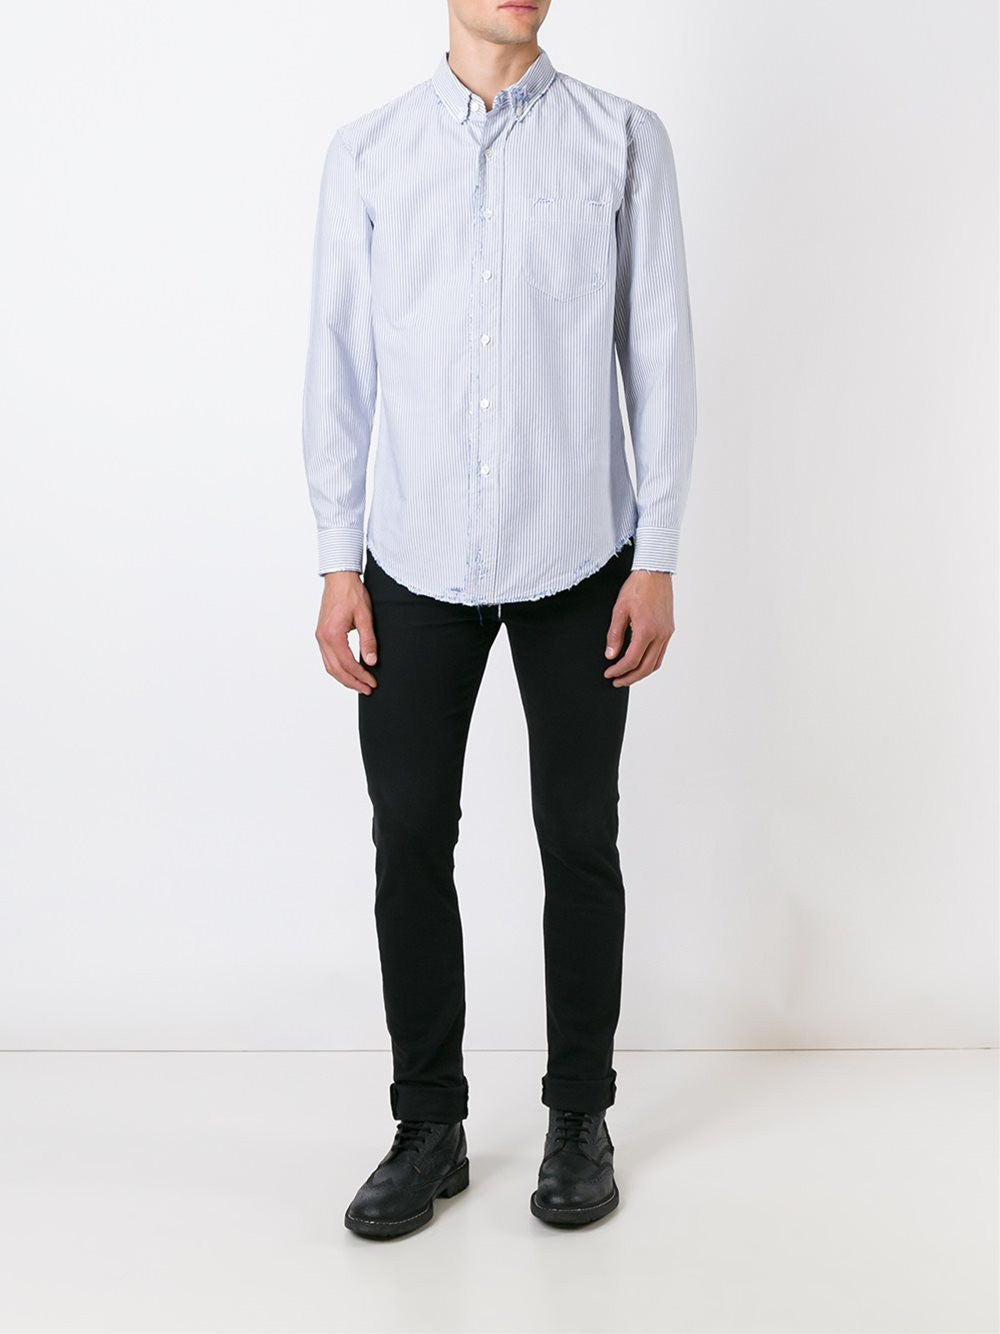 Distressed Striped Cotton Shirt | PMGA001-F1609-0055